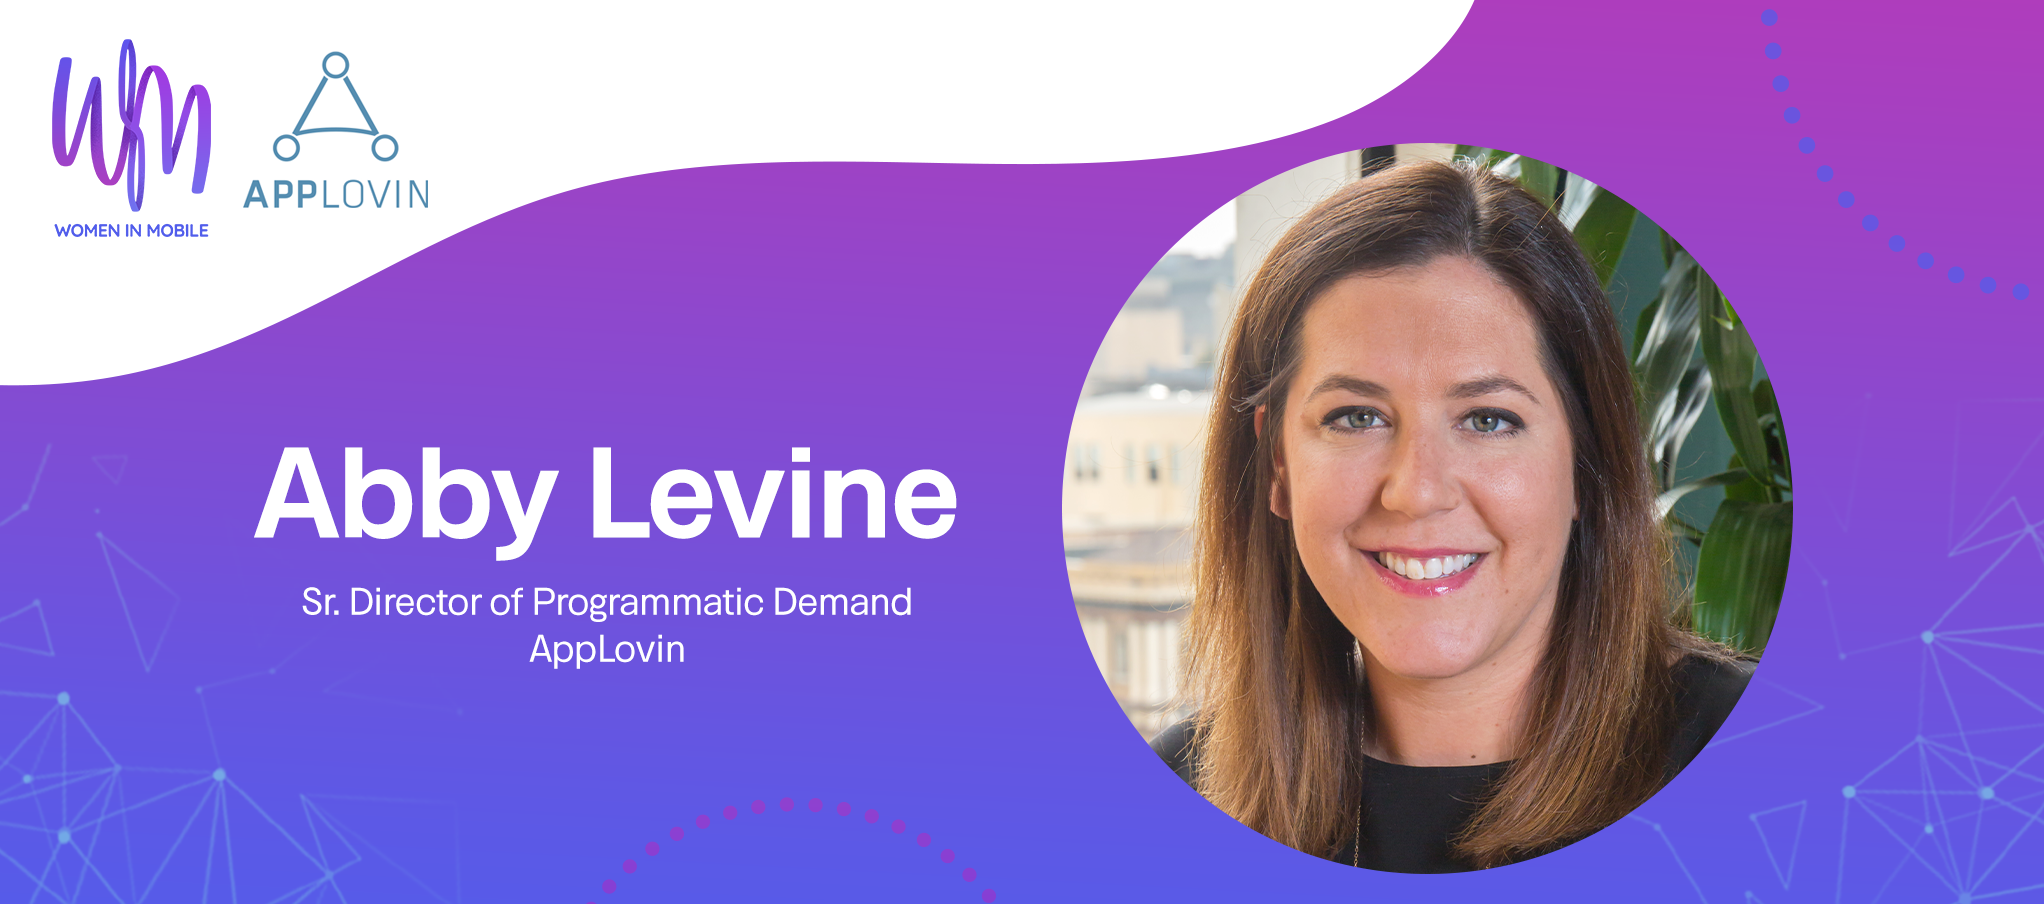 Abby Levine, Sr. Director of Programmatic Demand at AppLovin at Aarki's Women in Mobile series